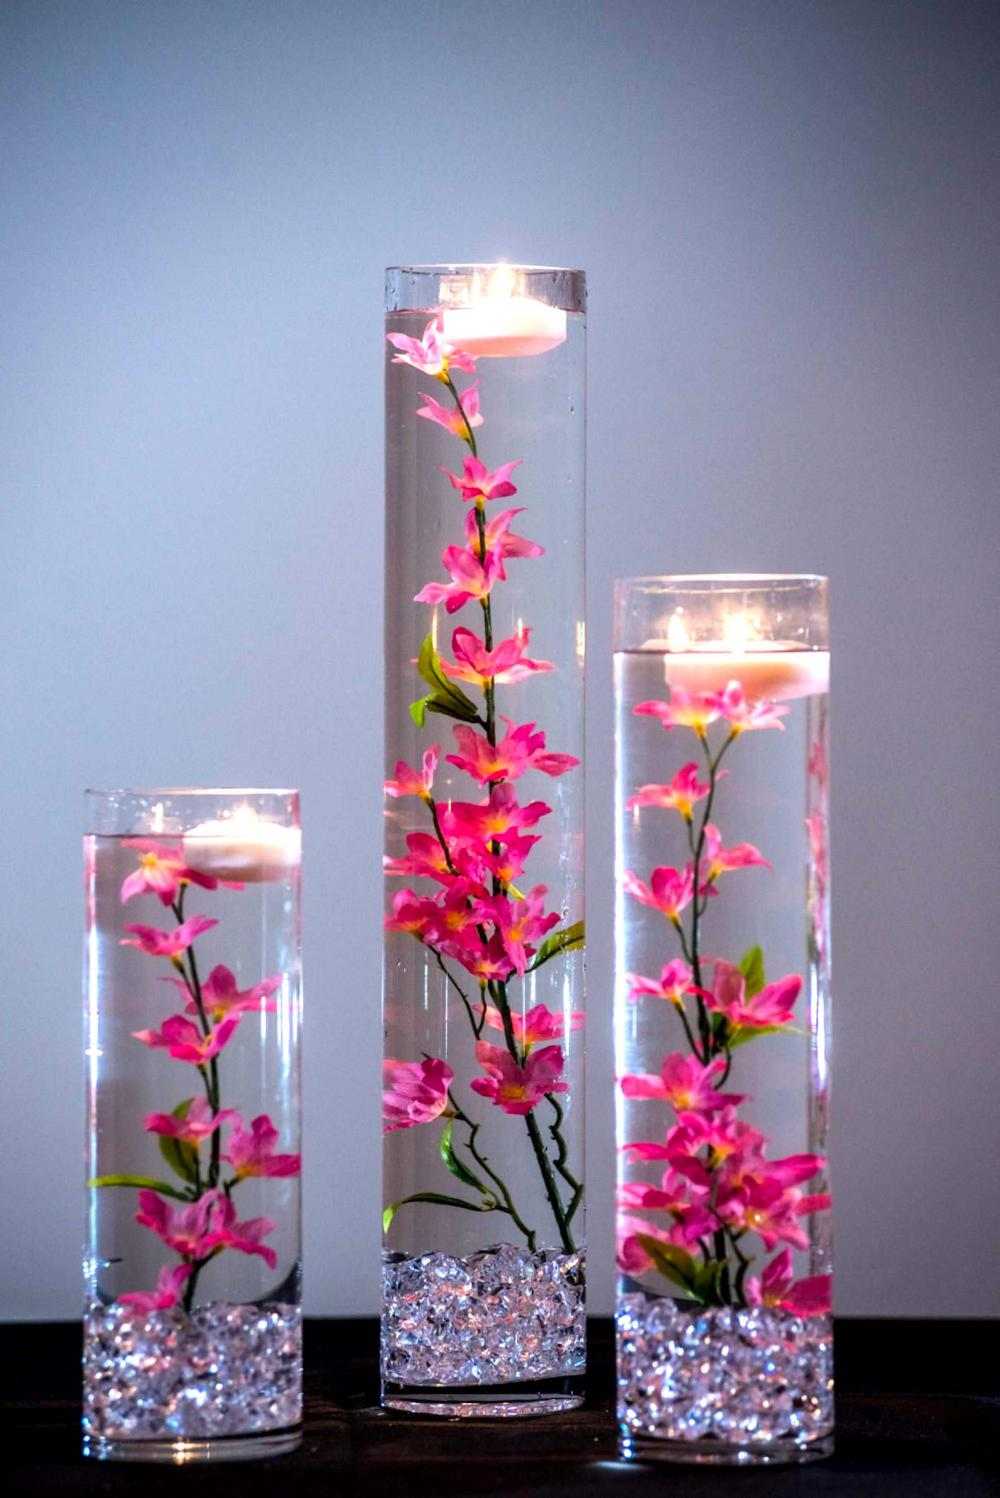 Some candles are masterpieces